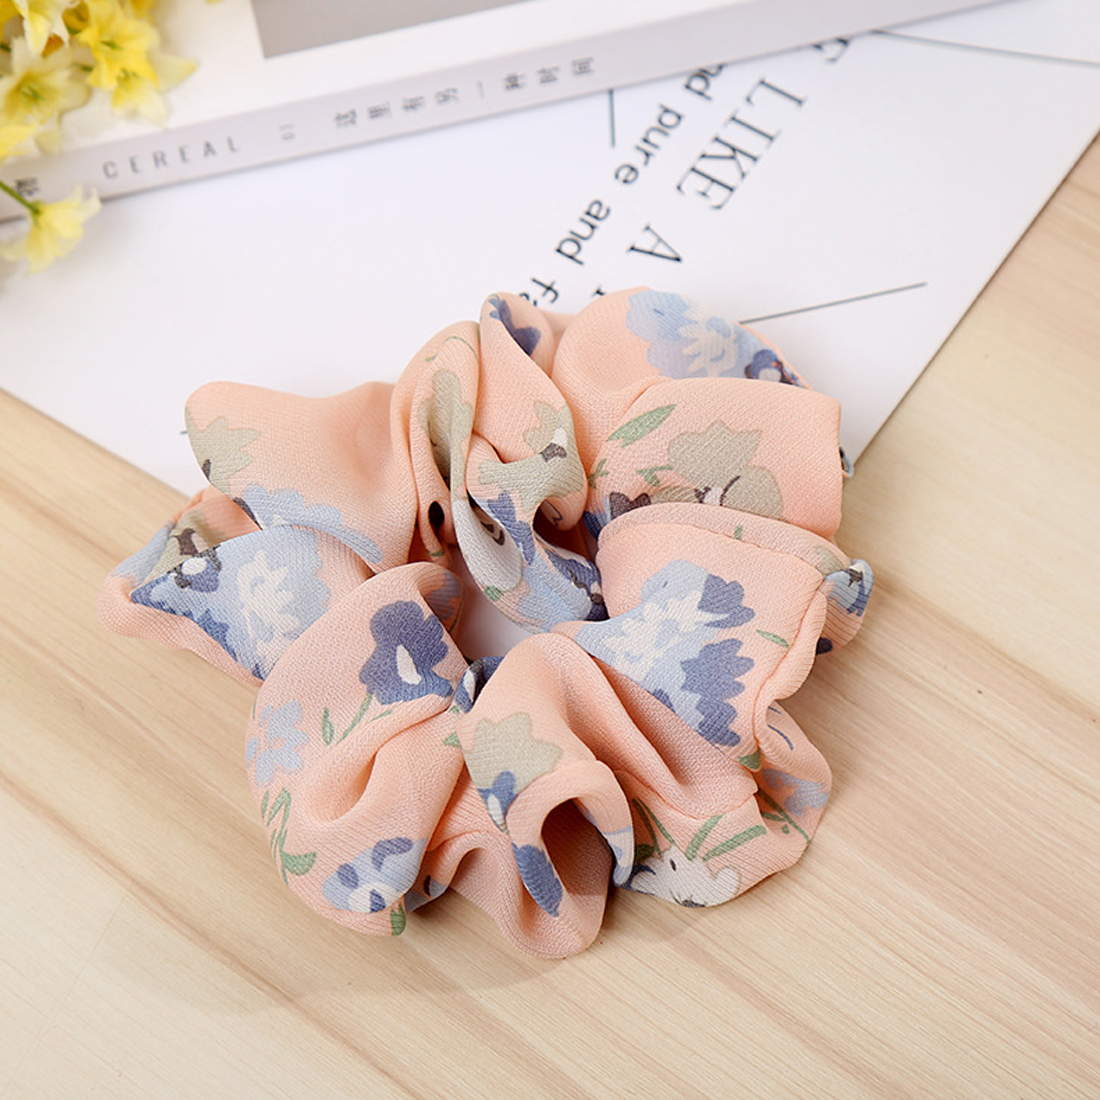 Women comfortable Elastic Hair Rope Ring Tie Scrunchie Ponytail Holder Band Headband Convenient hair band